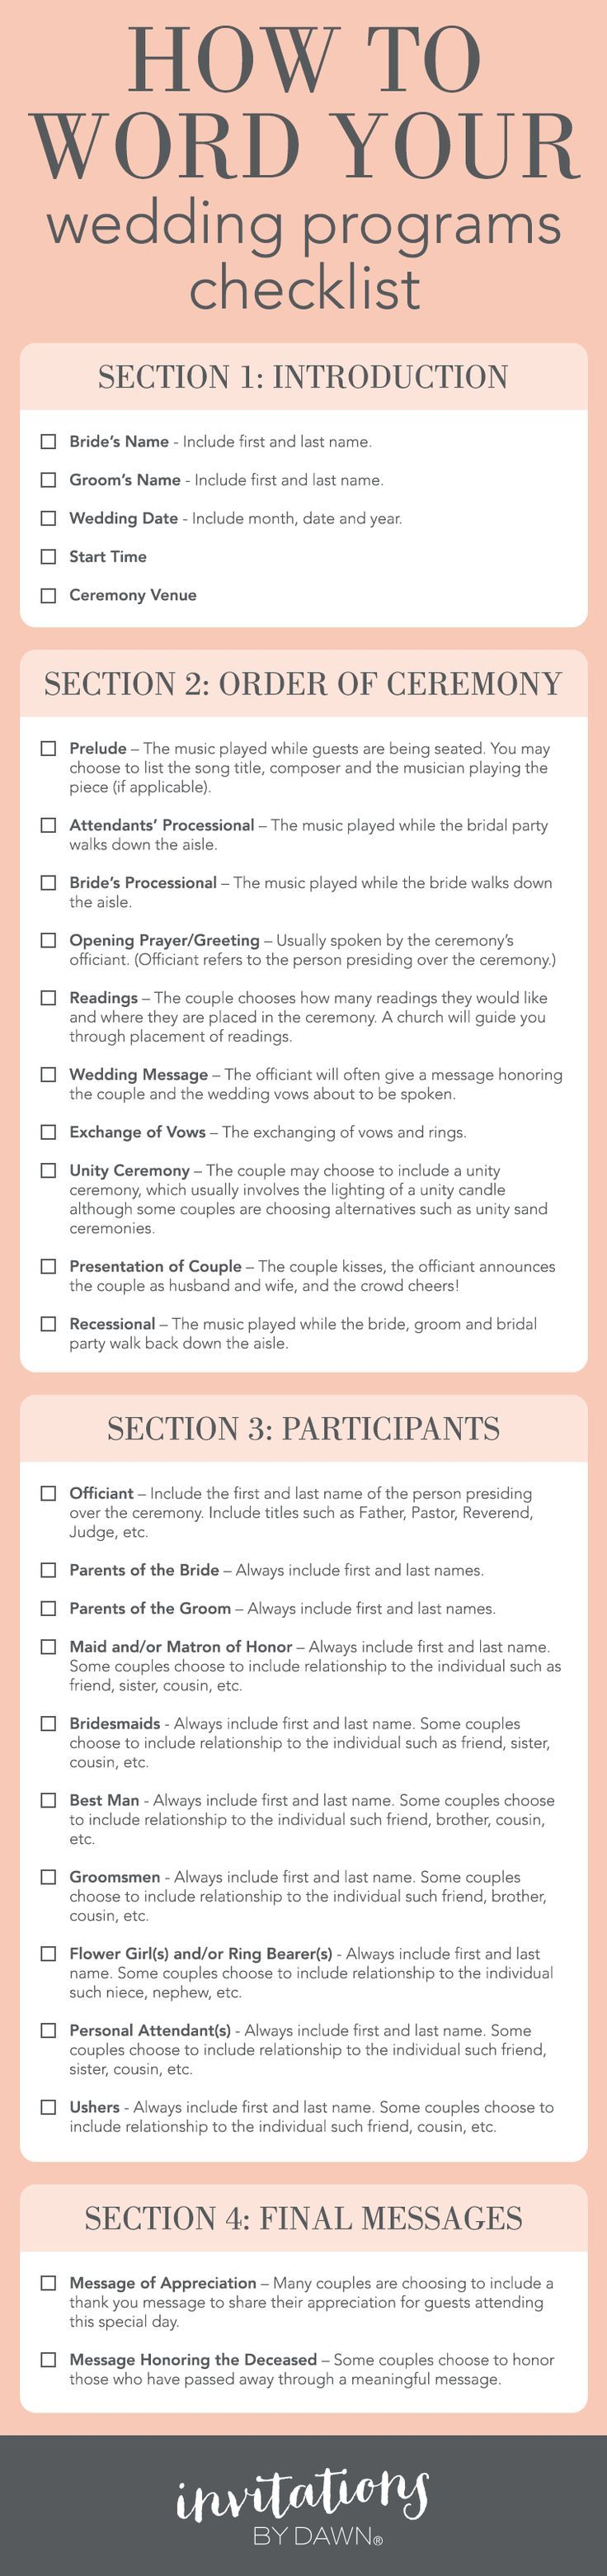 A Checklist: How to Word Your Wedding Programs